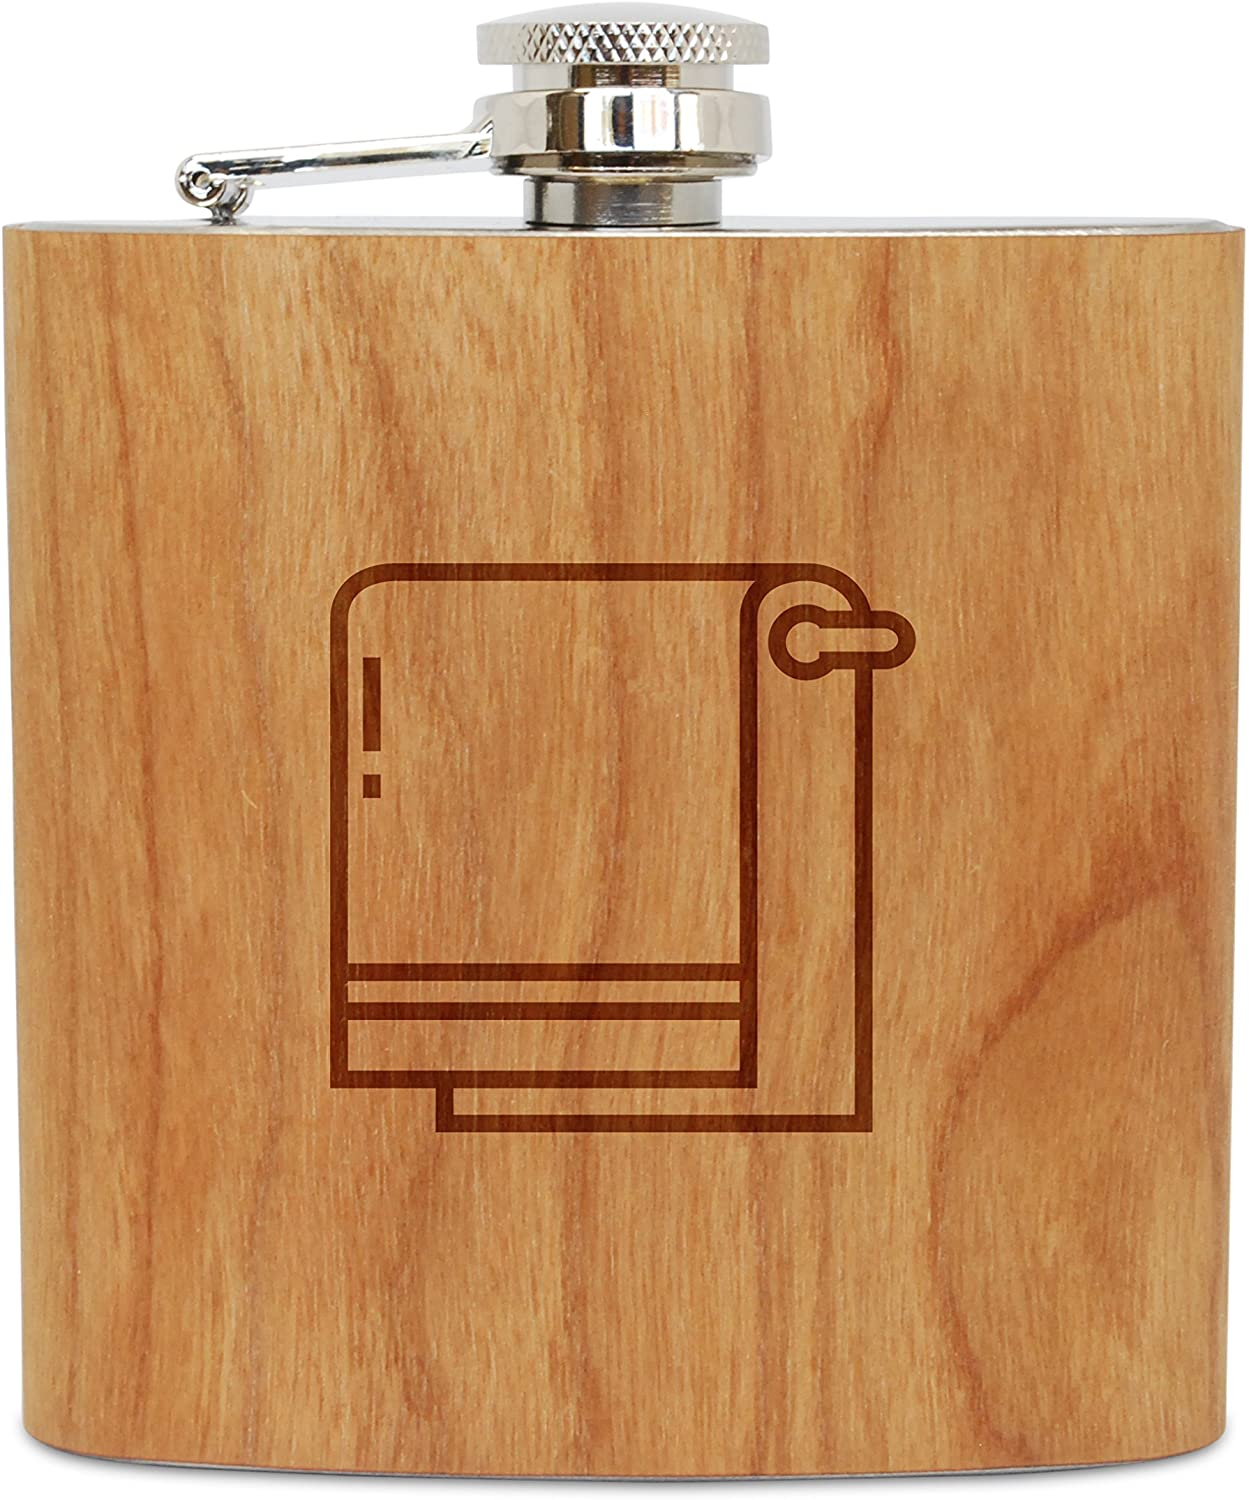 WOODEN ACCESSORIES COMPANY Cherry Wood Flask With Stainless Steel Body - Laser Engraved Flask With Towel Design - 6 Oz Wood Hip Flask Handmade In USA